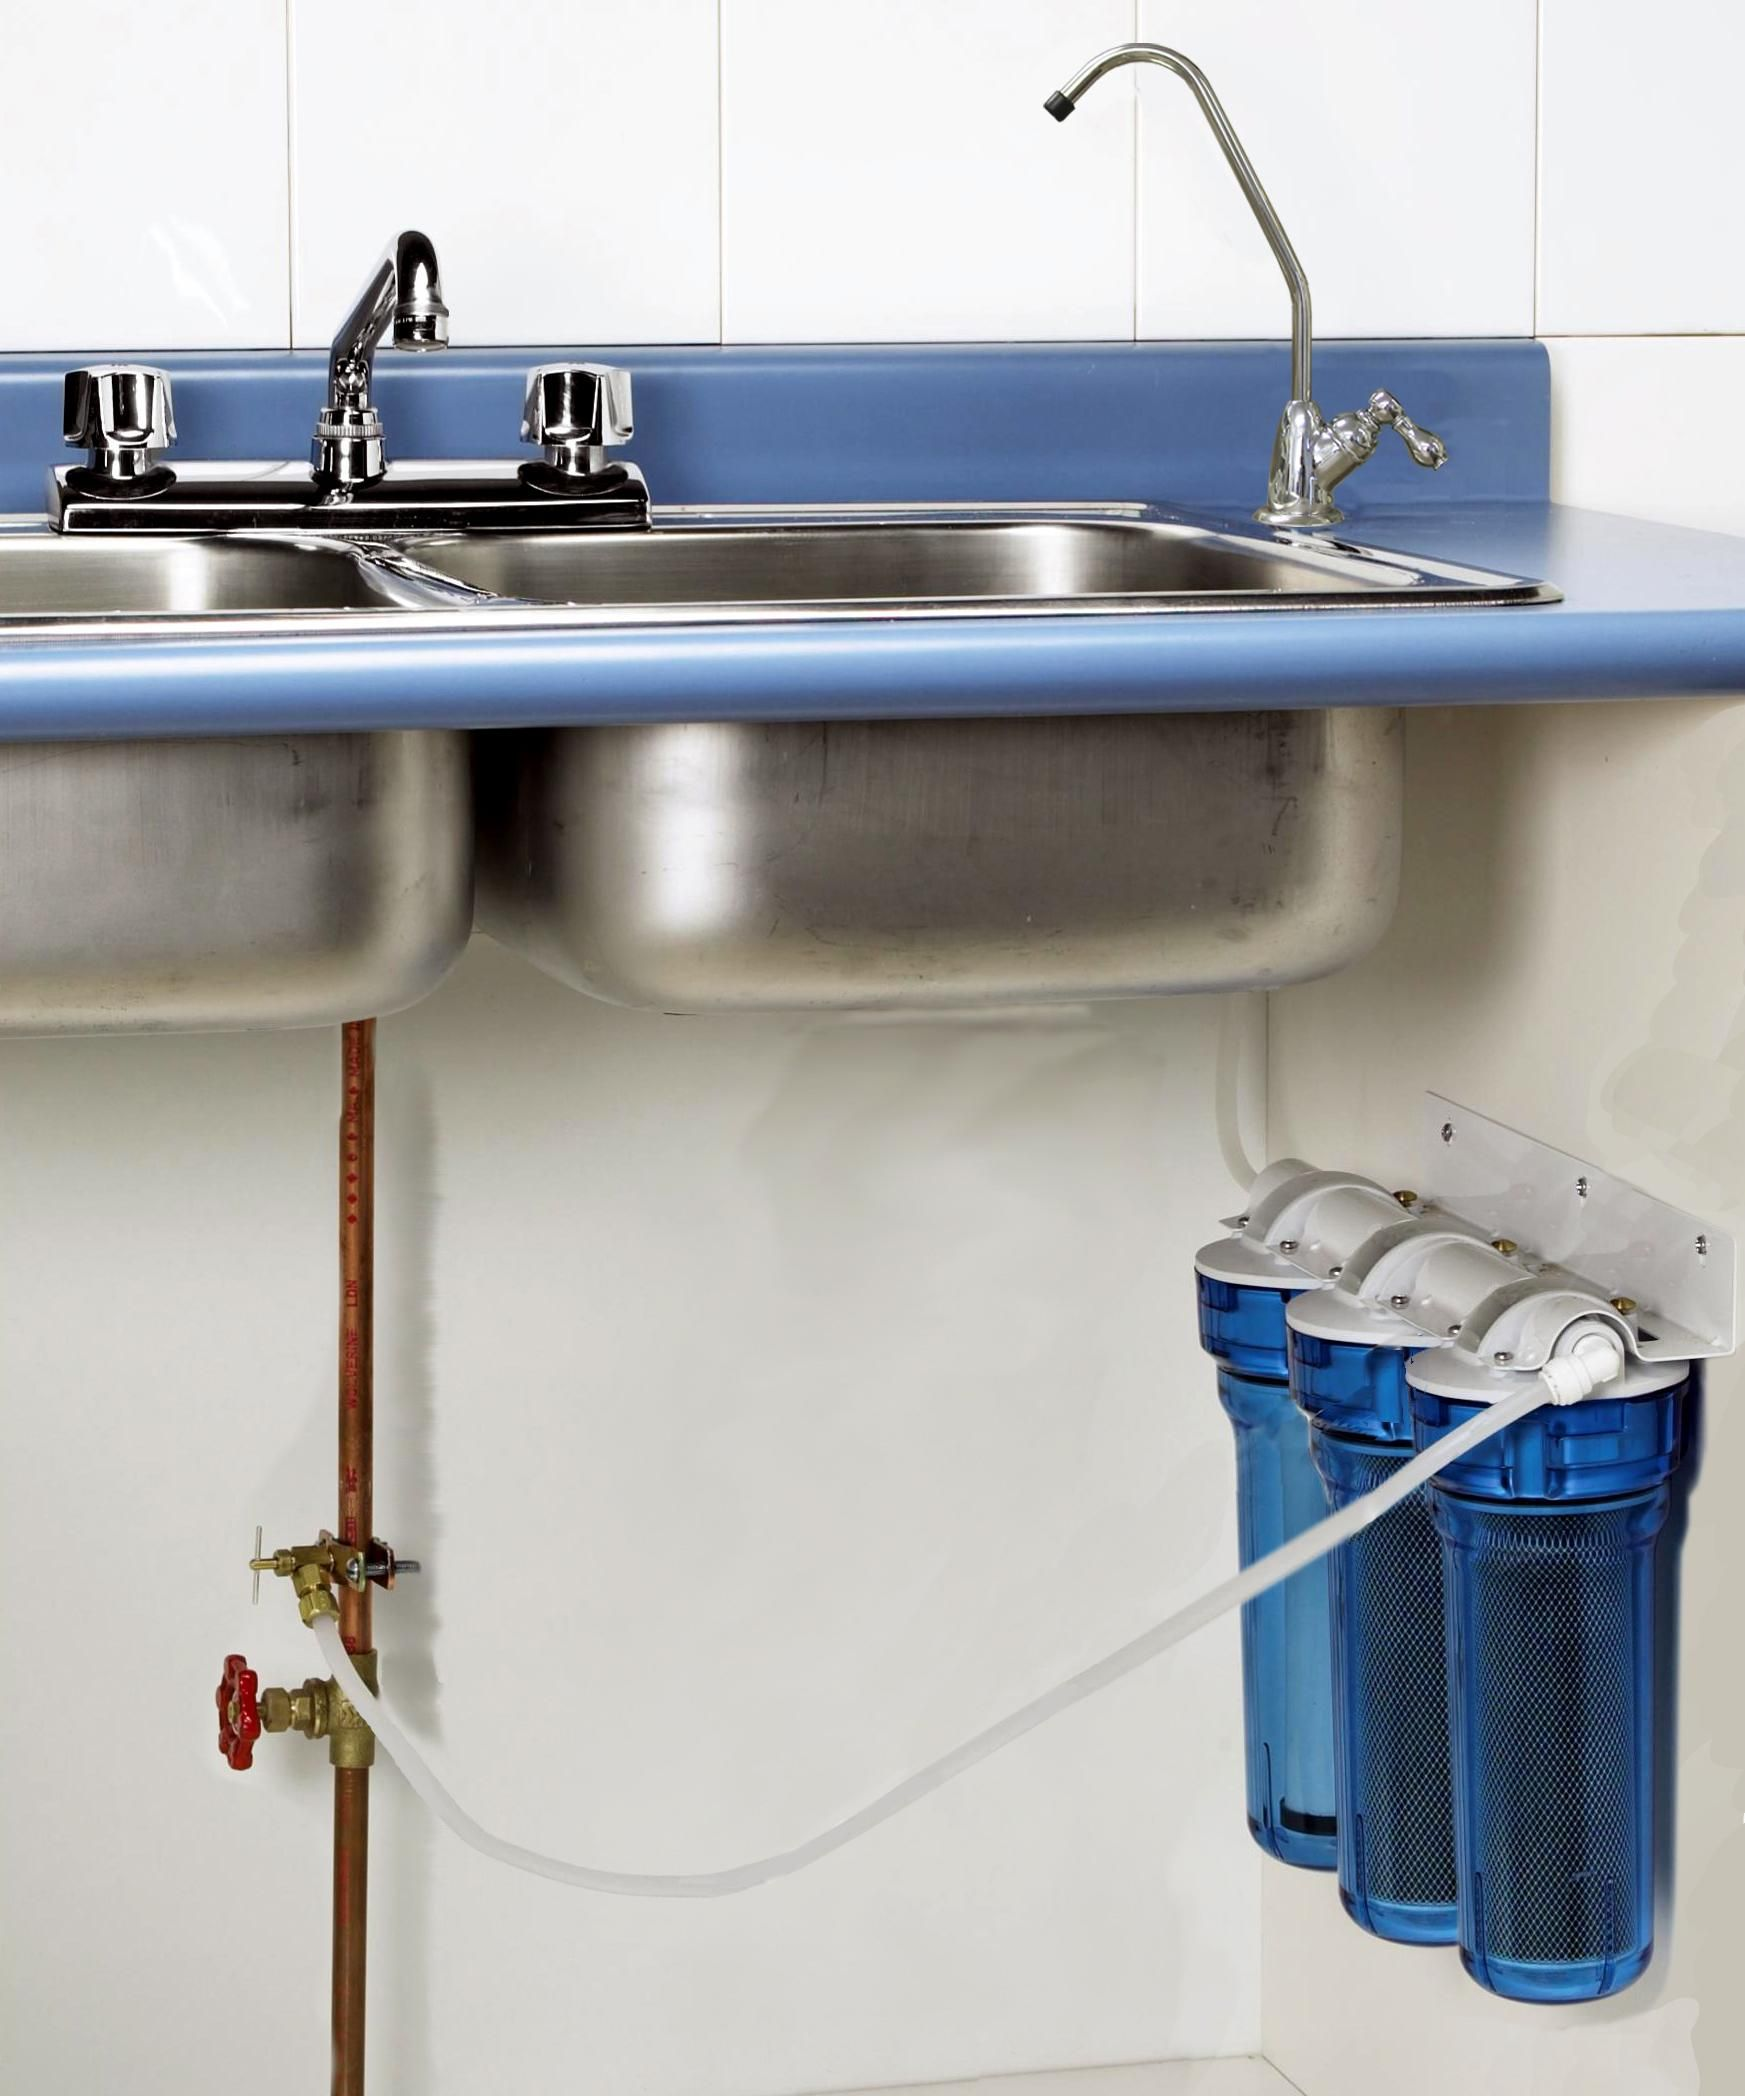 With The Entire Fad Around Water In Containers Recent Details Have Thrown Doubt As To Whether T Sink Water Filter Kitchen Sink Faucets Under Sink Water Filter